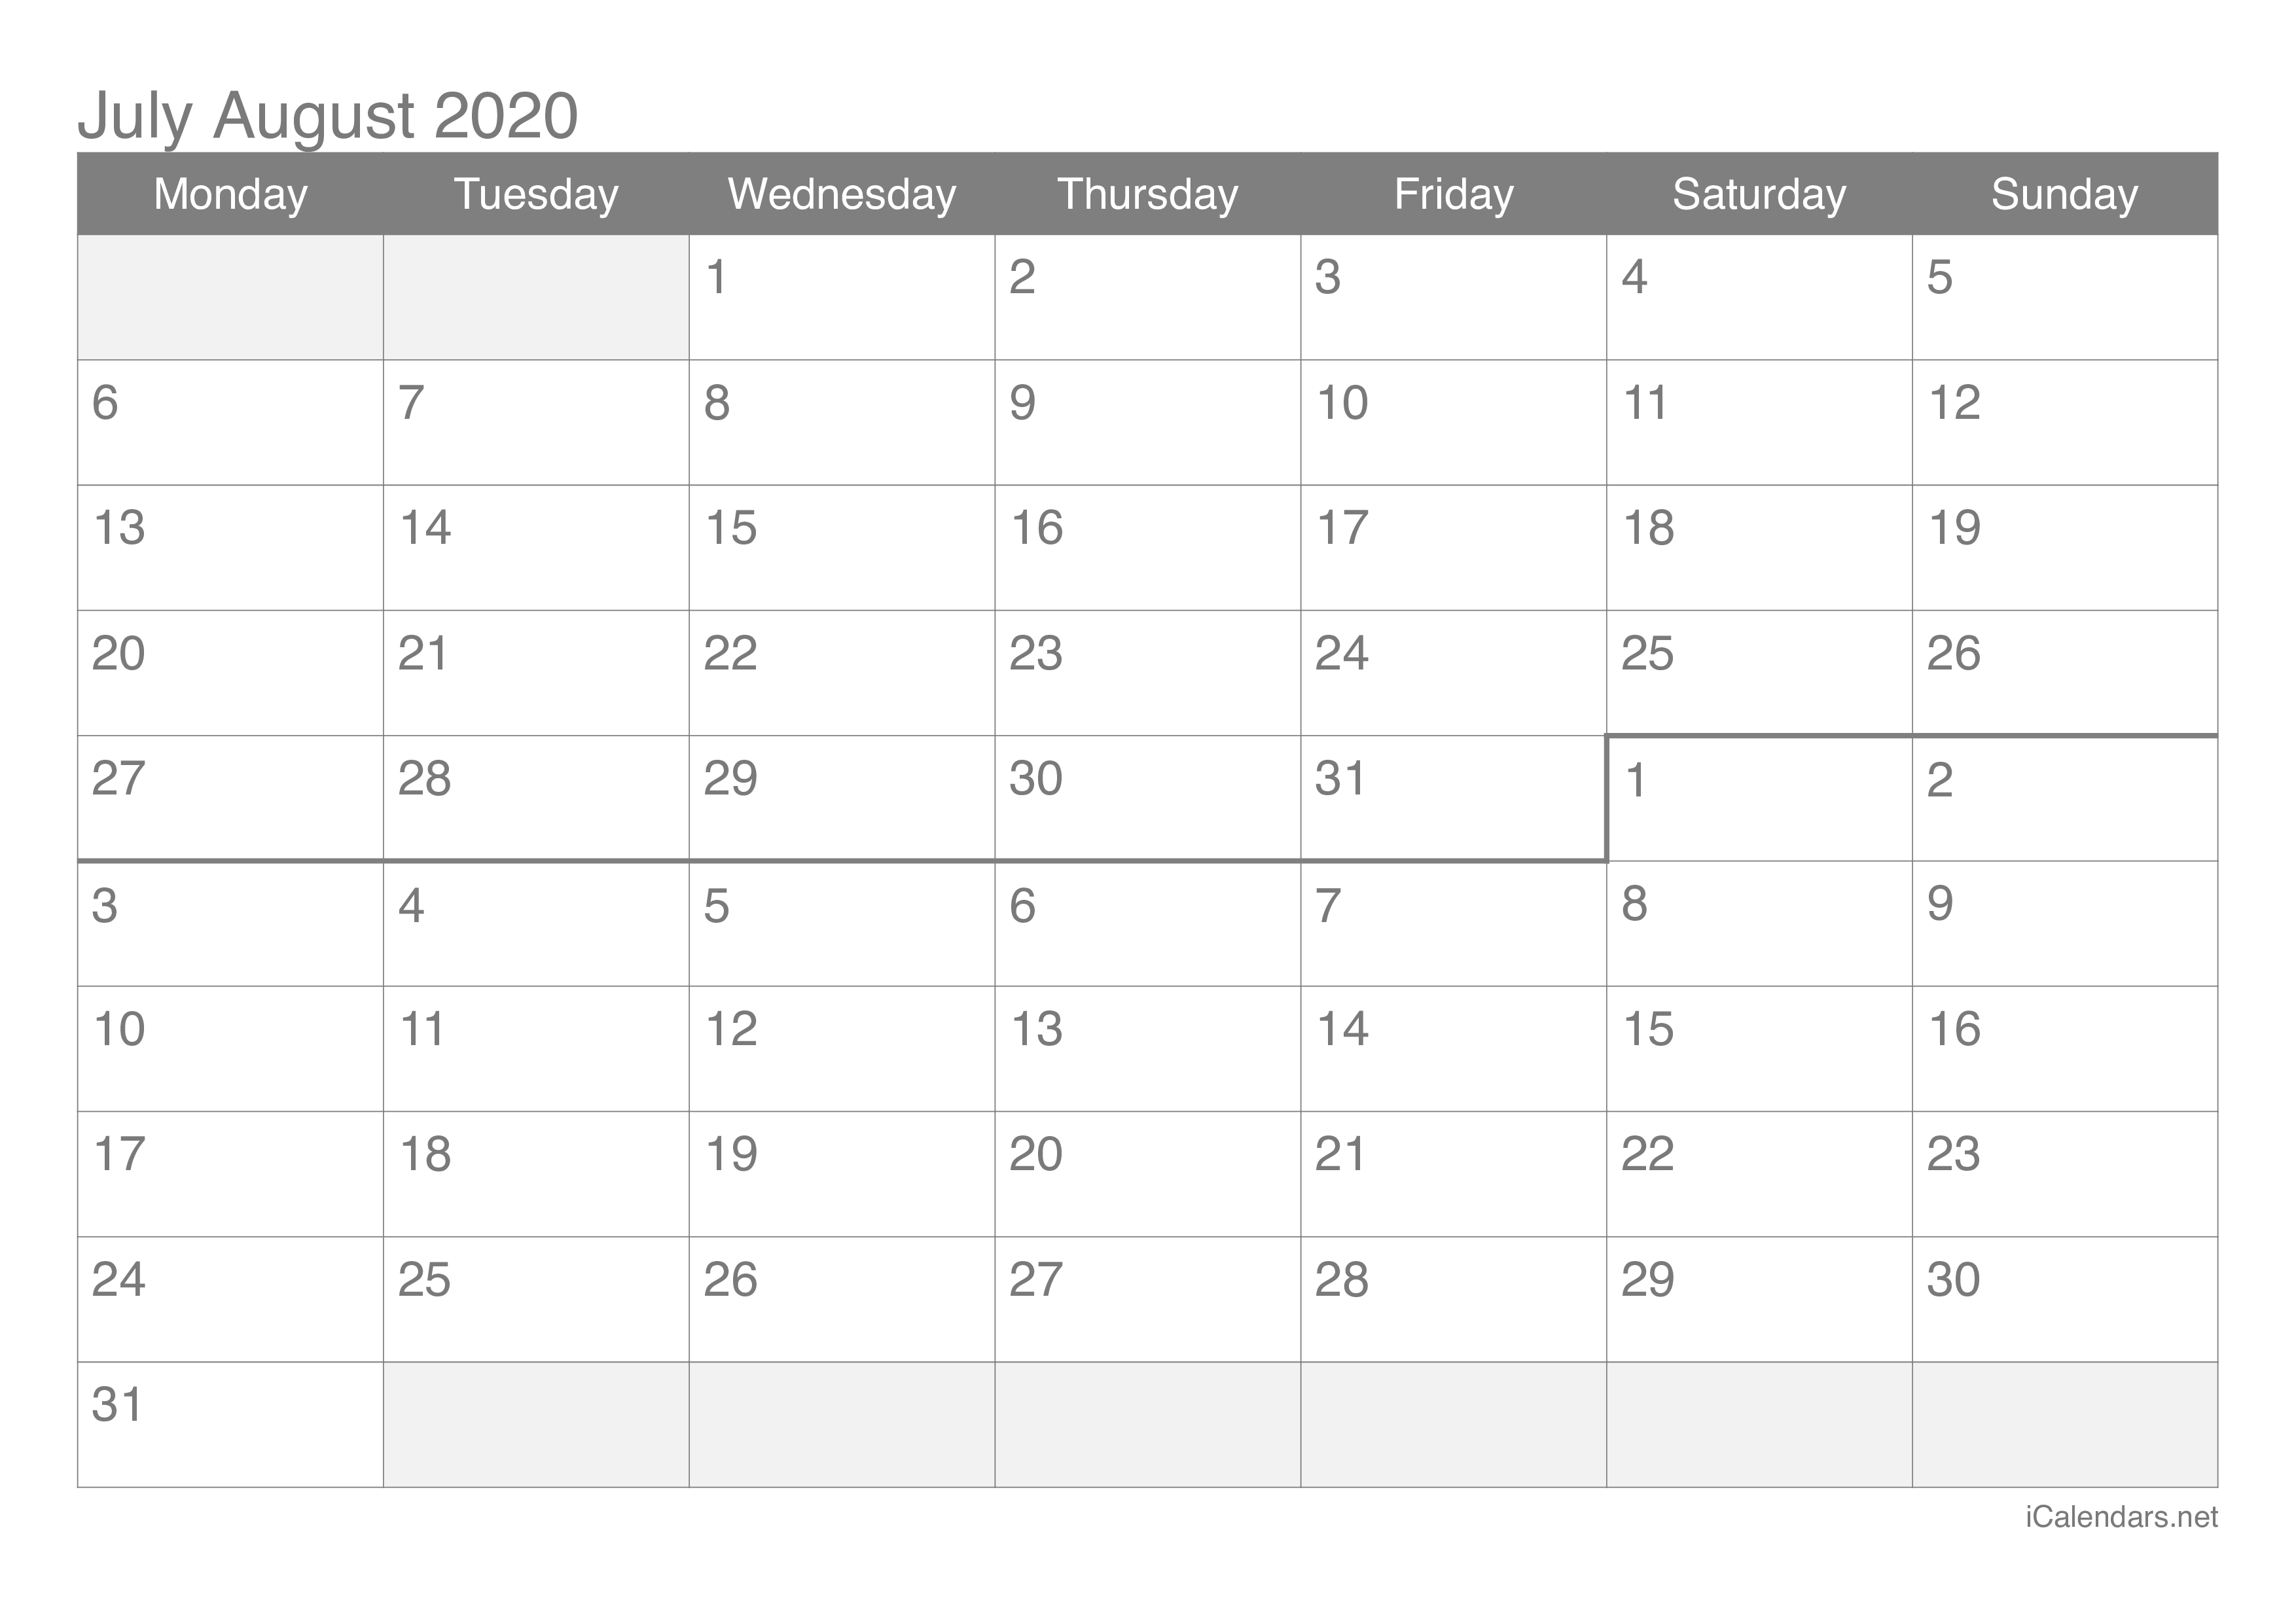 July And August 2020 Printable Calendar Icalendars